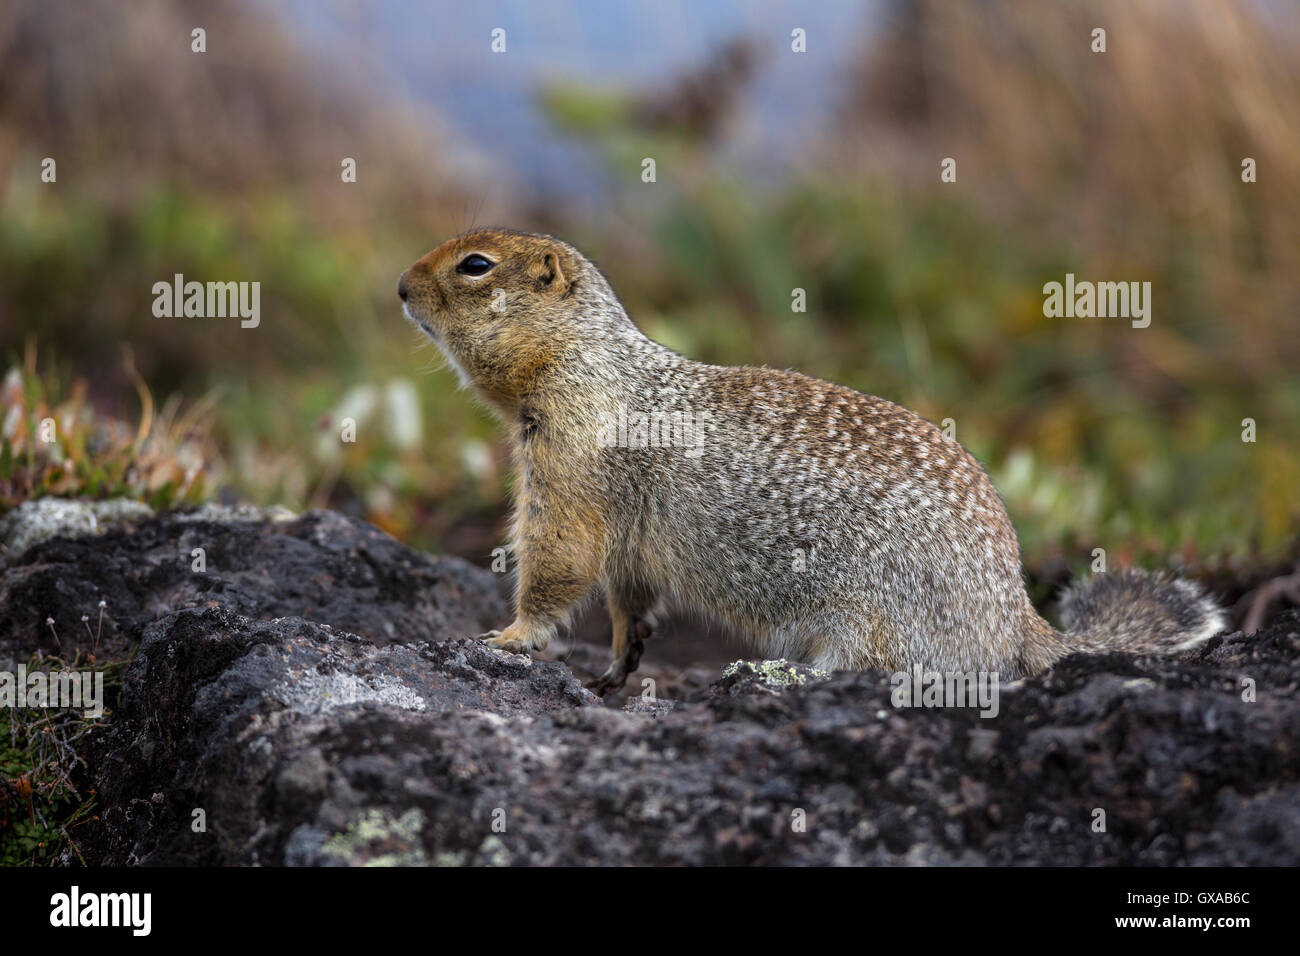 View of Arctic ground squirrel in its natural habitat Stock Photo